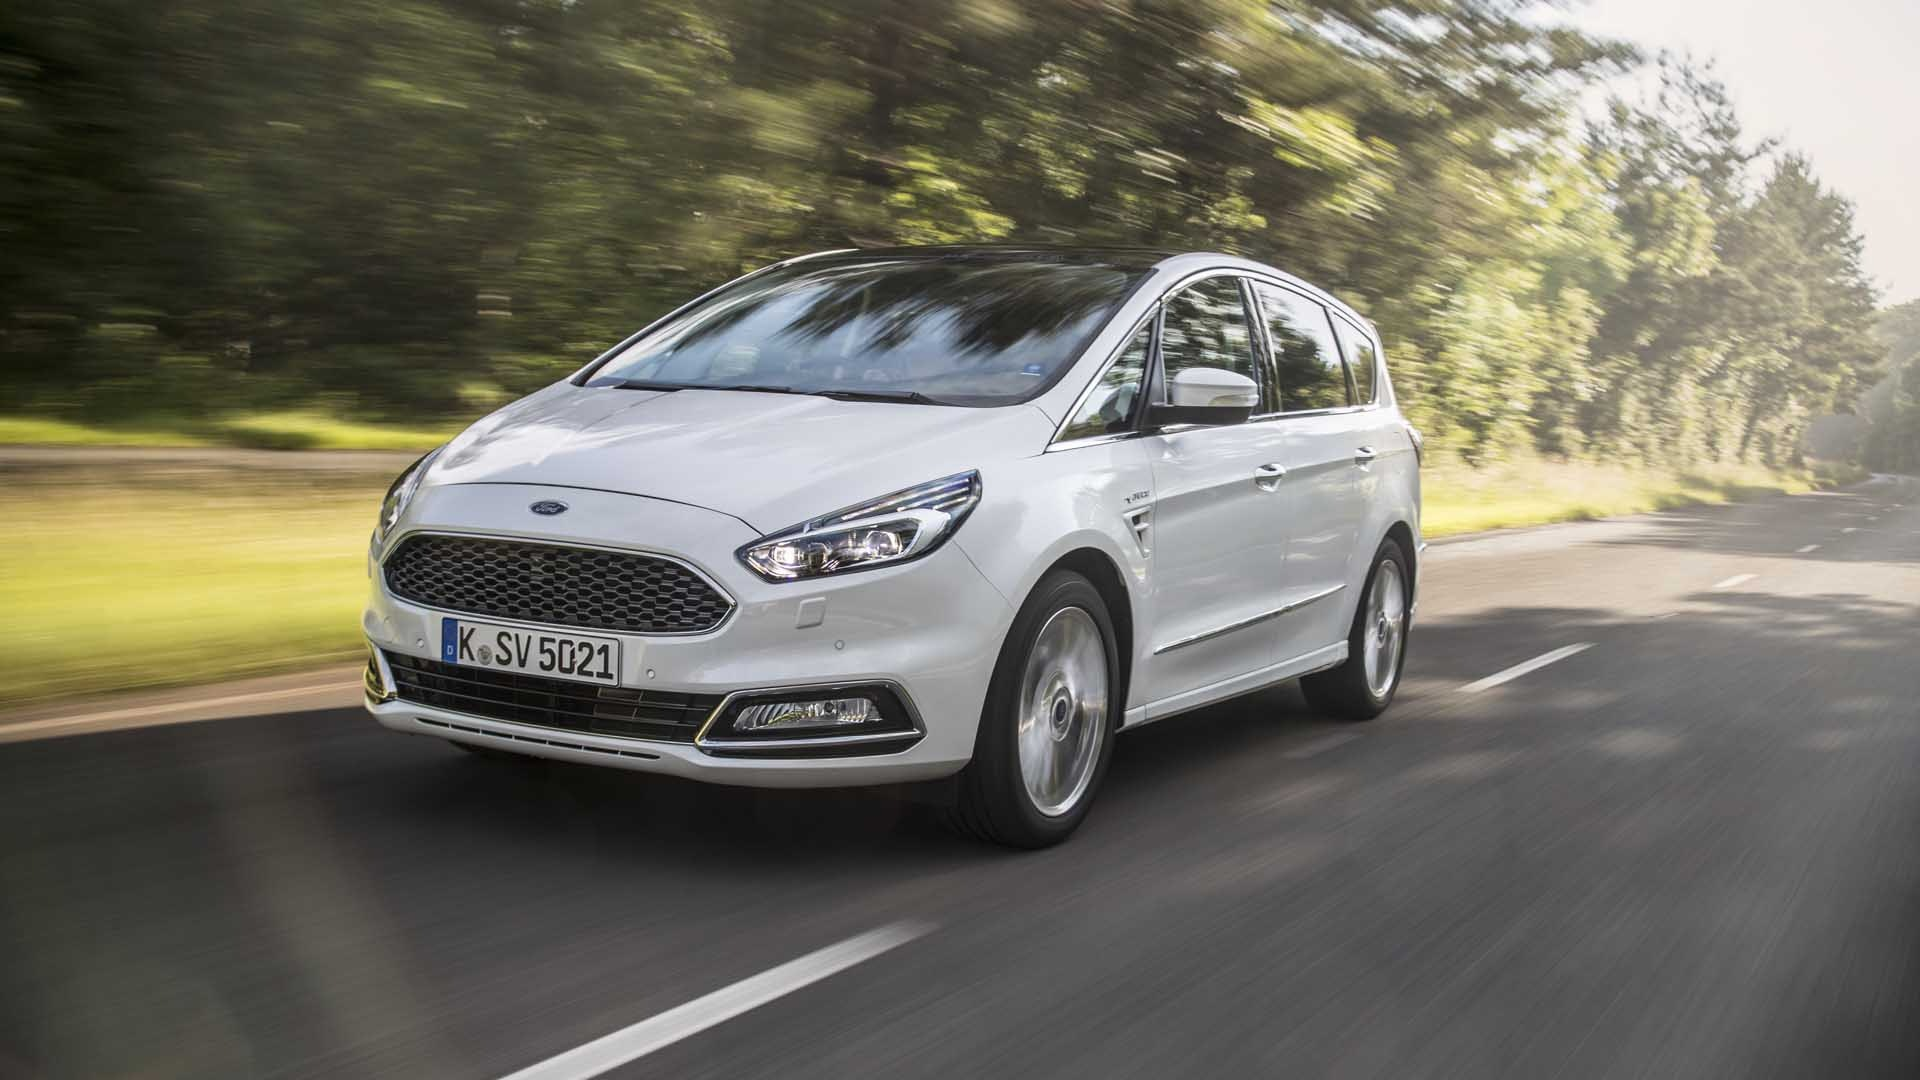 Ford S-Max hvid vignale front